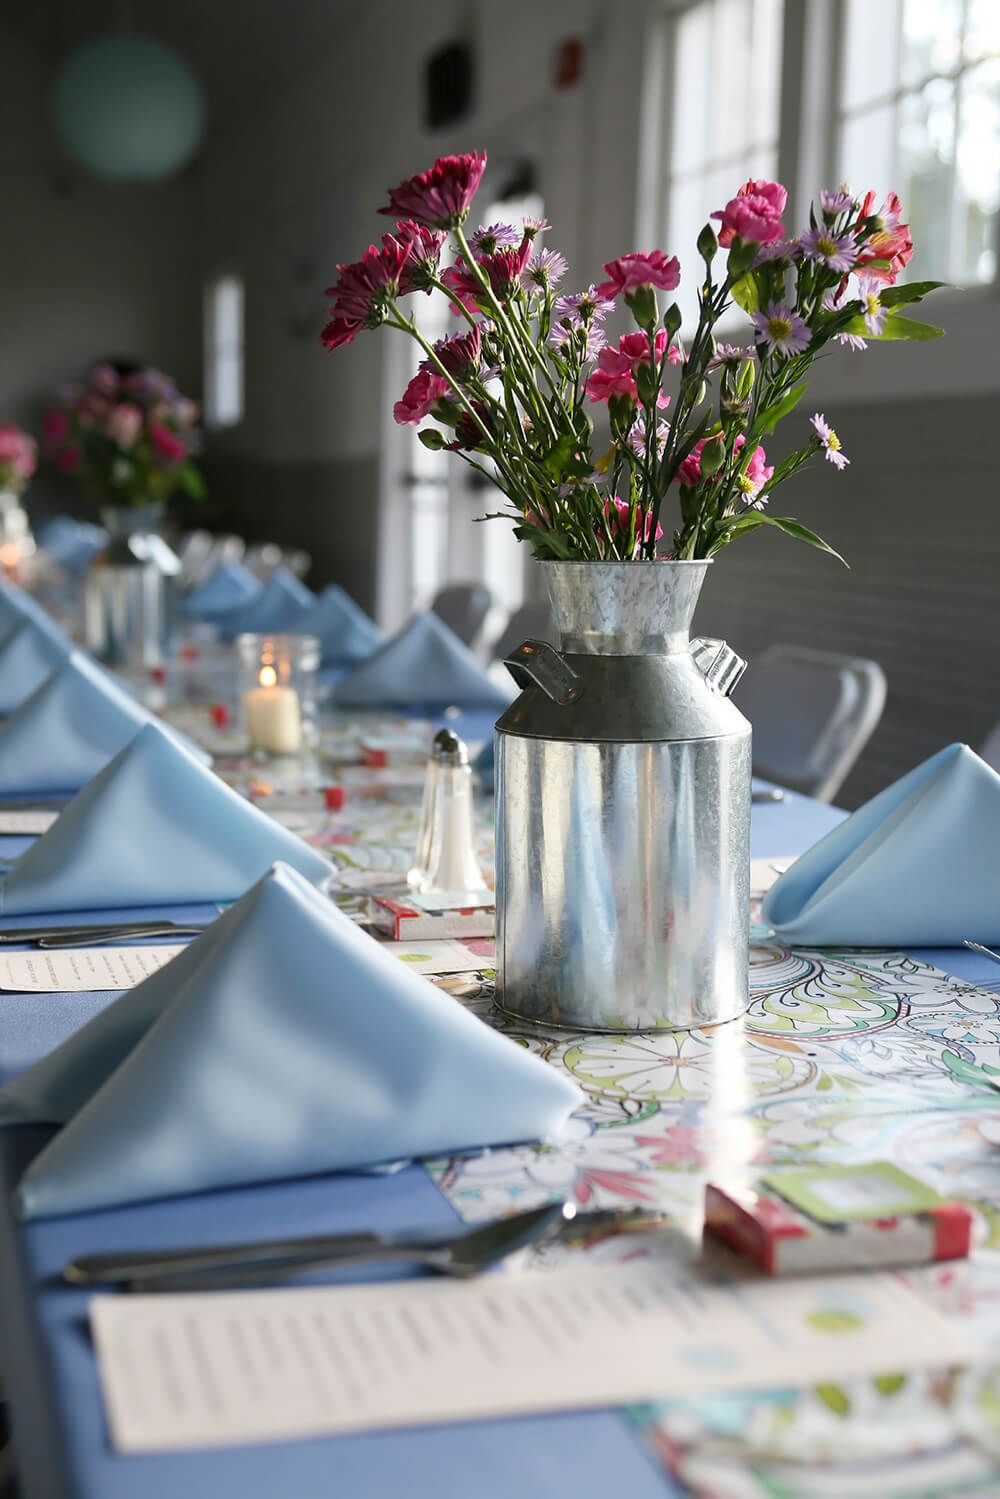 33 Extravagant Floral Arrangements For Your Dining Table Wedding Floral Centerpieces Wedding Centerpieces Diy Picture Wedding Centerpieces